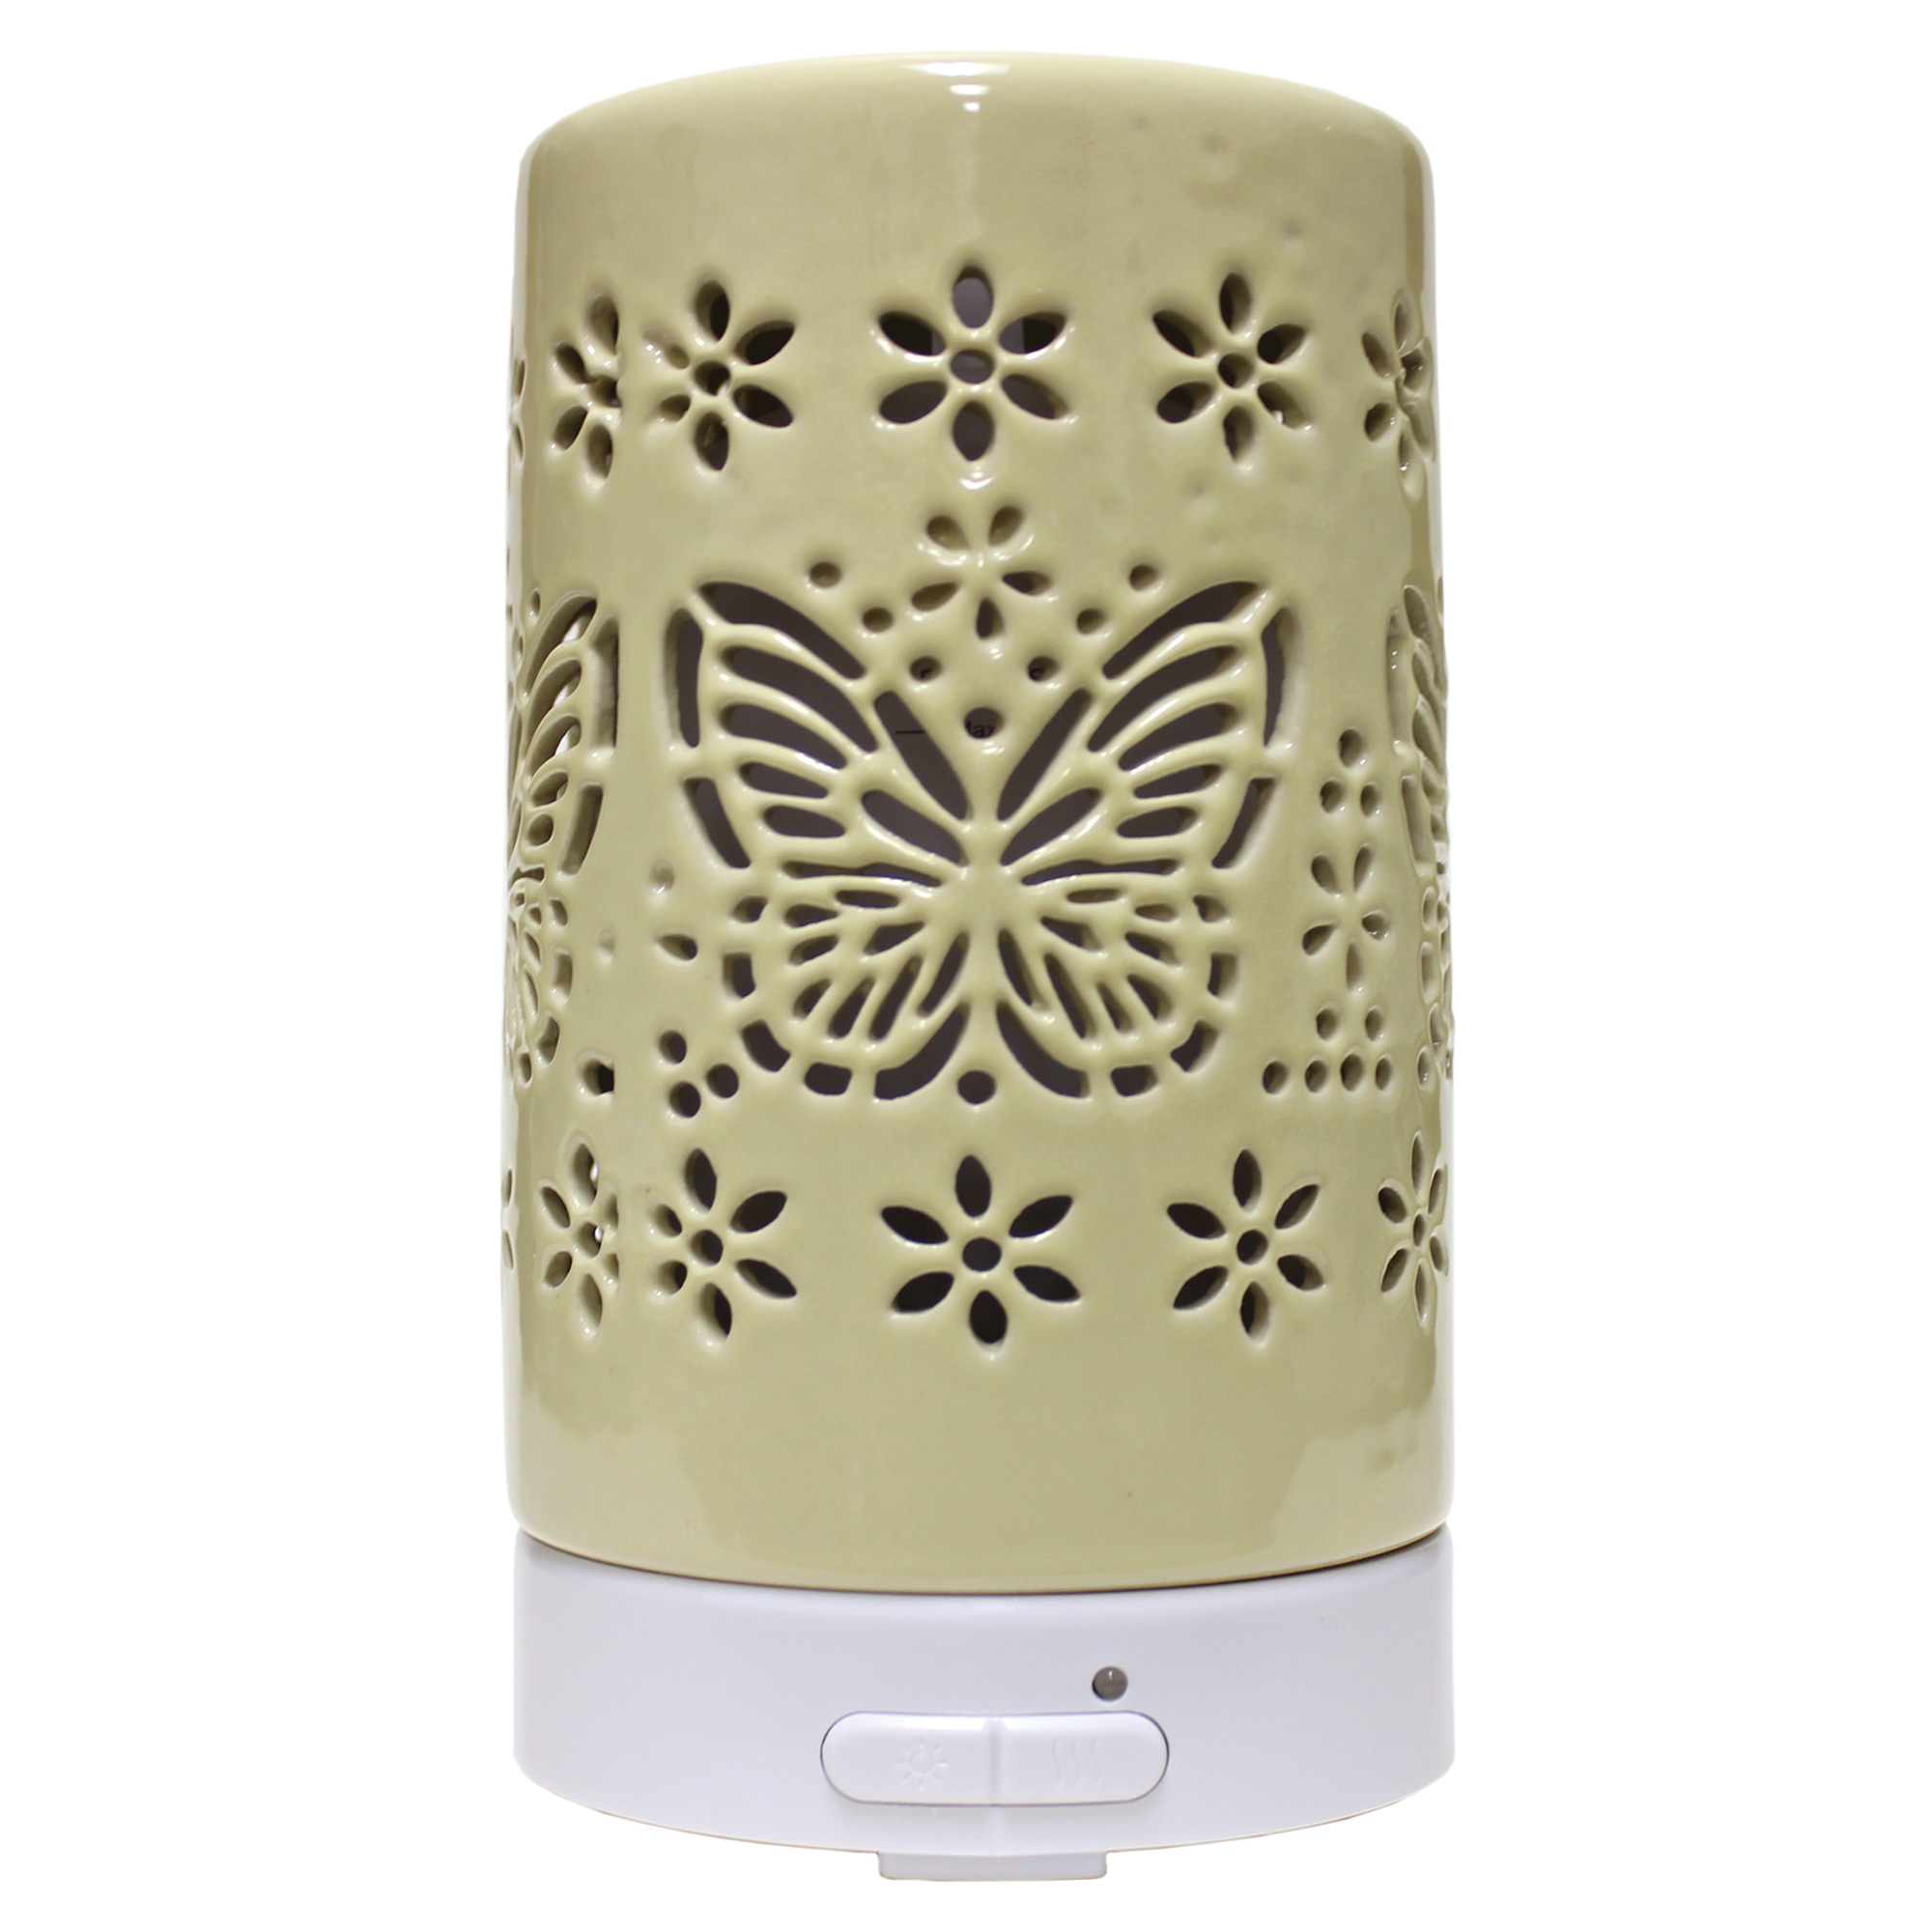 BUTTERFLY ULTRASONIC OIL DIFFUSERUPC# 674623018294